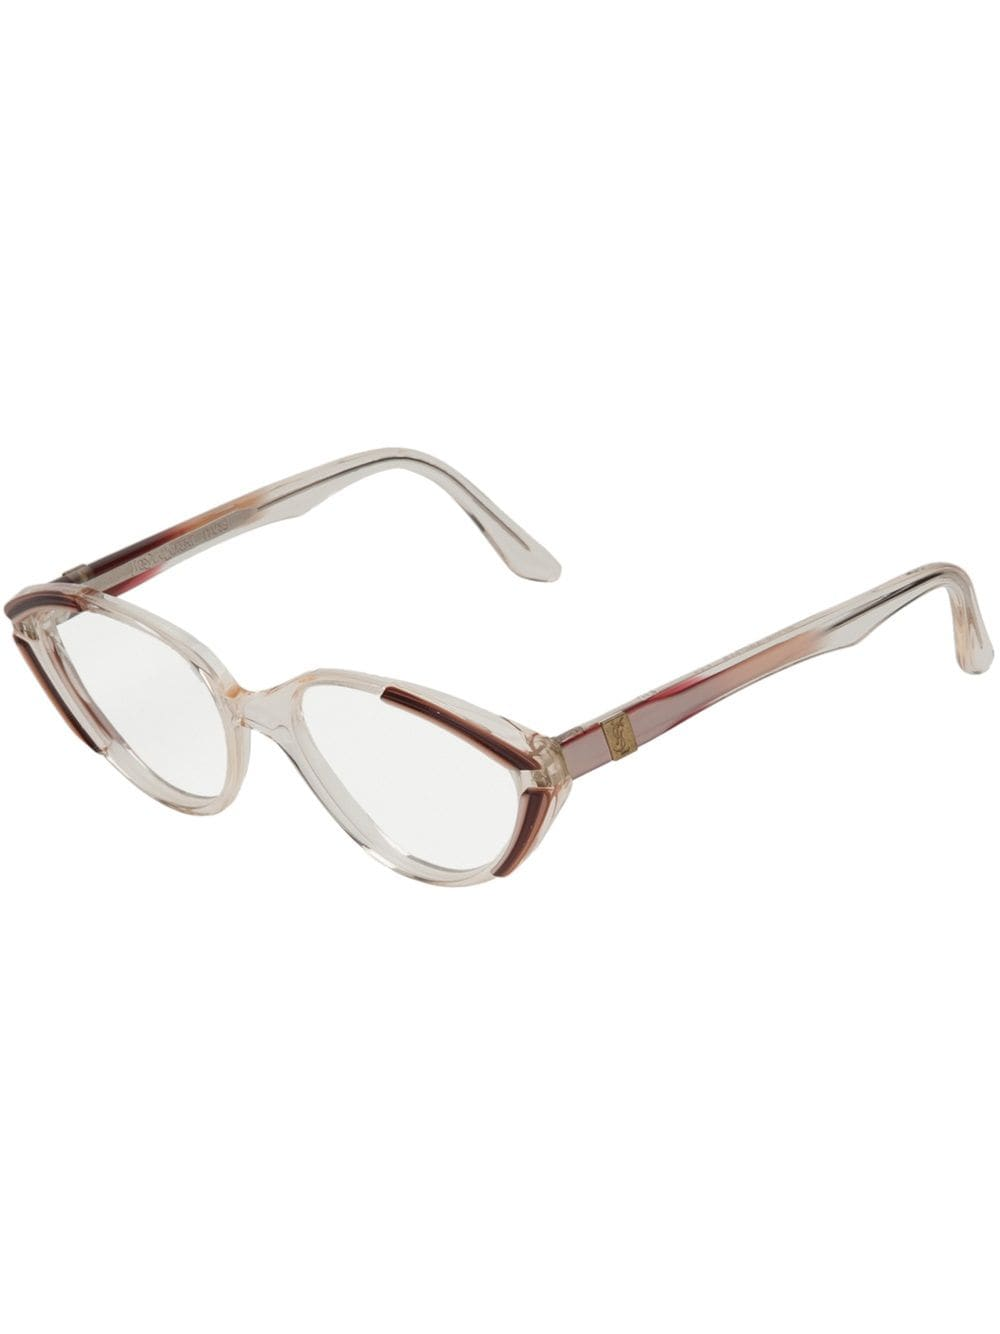 Yves Saint Laurent Pre-Owned Ovale Brille - Nude von Yves Saint Laurent Pre-Owned